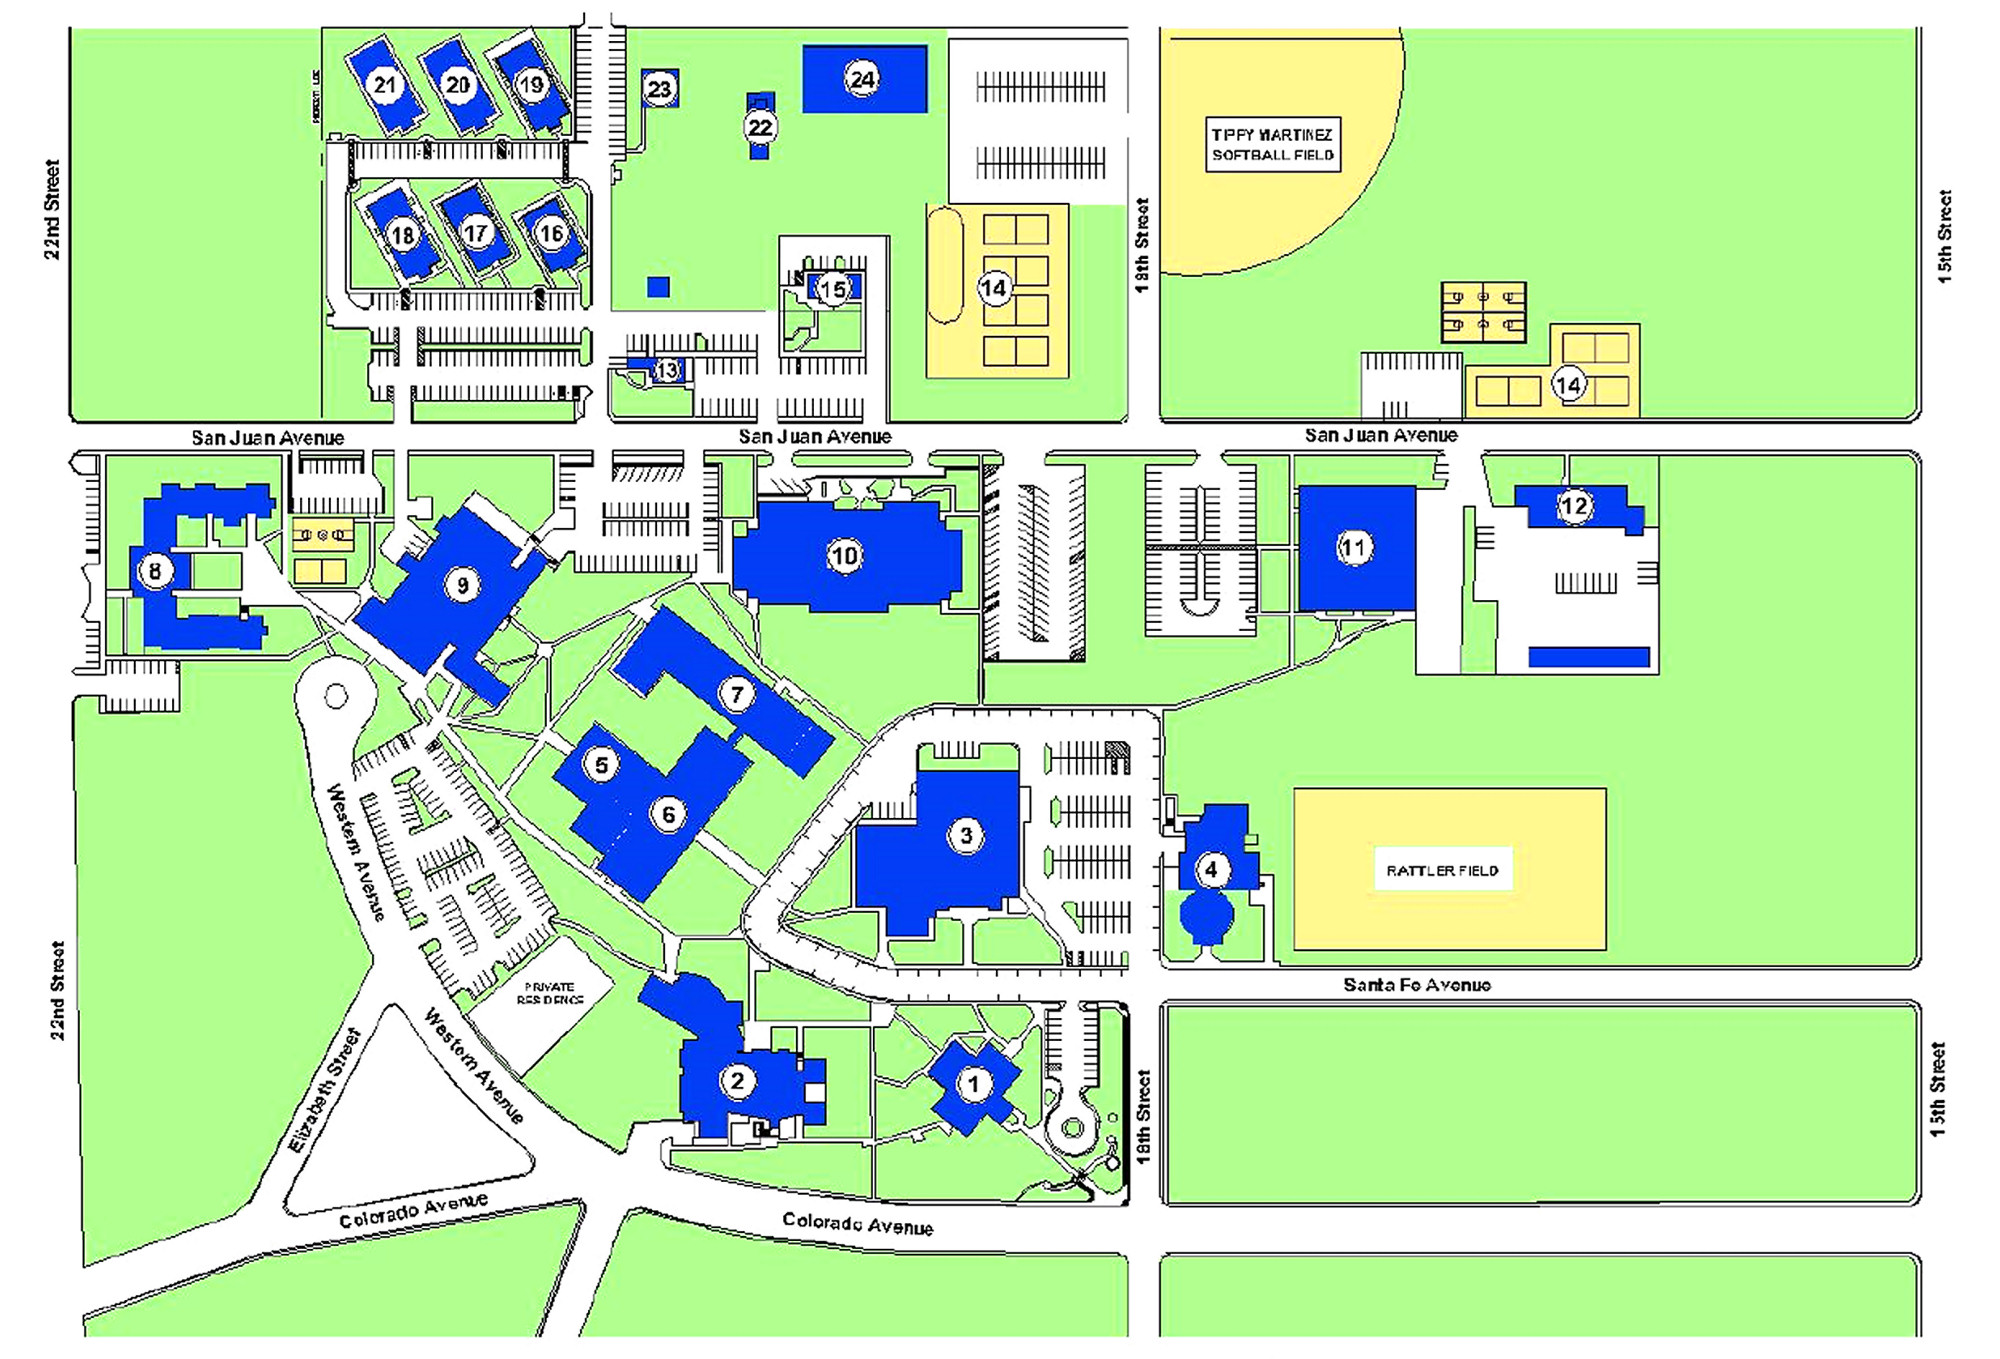 rockland community college campus map Campus Map Buildings About Wwcc Walla Walla Community rockland community college campus map